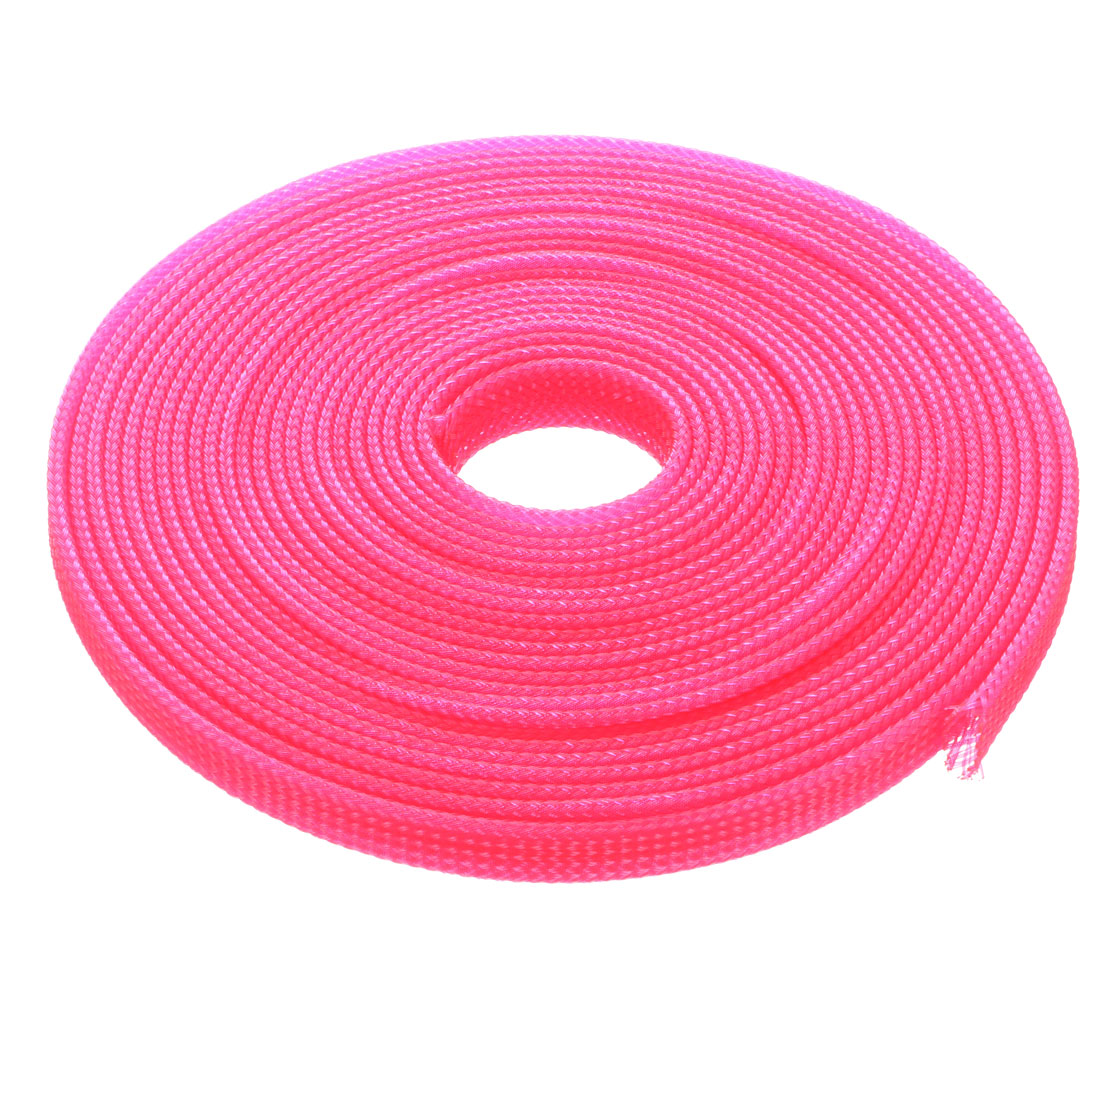 PET Braided Sleeving 16.4 Feet 5m Expandable Cable Wrap 8mm Diameter Wire Sheath Pink